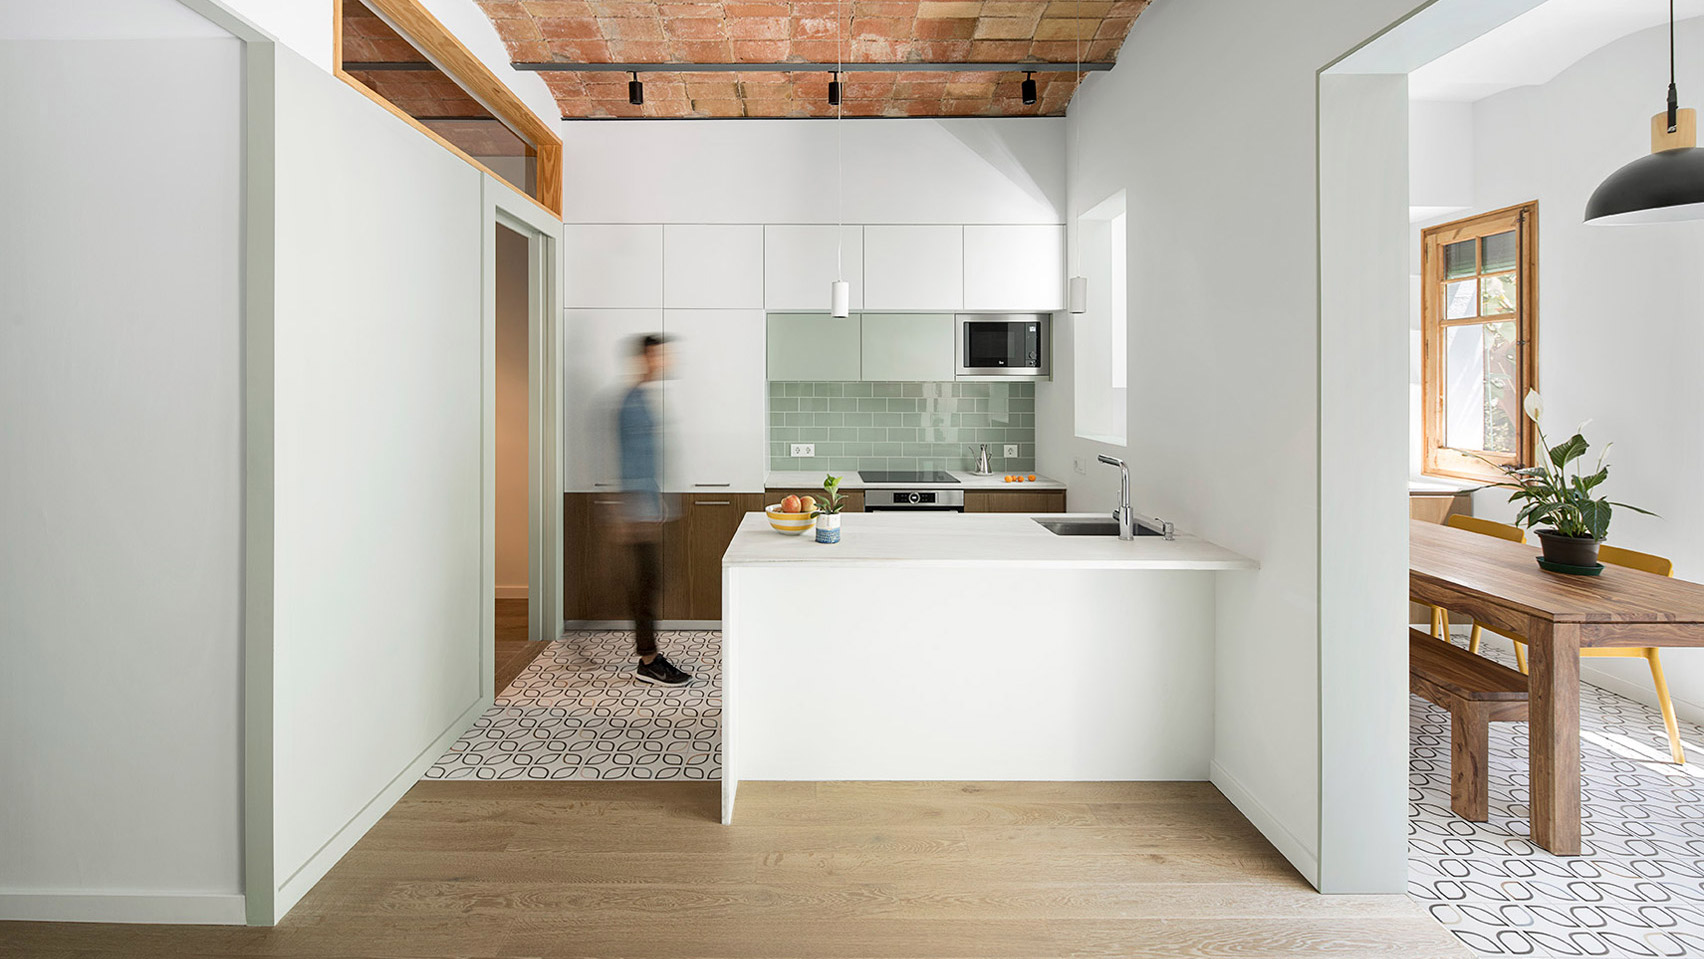 Caldrap in Barcelona, Spain, by Nook Architects